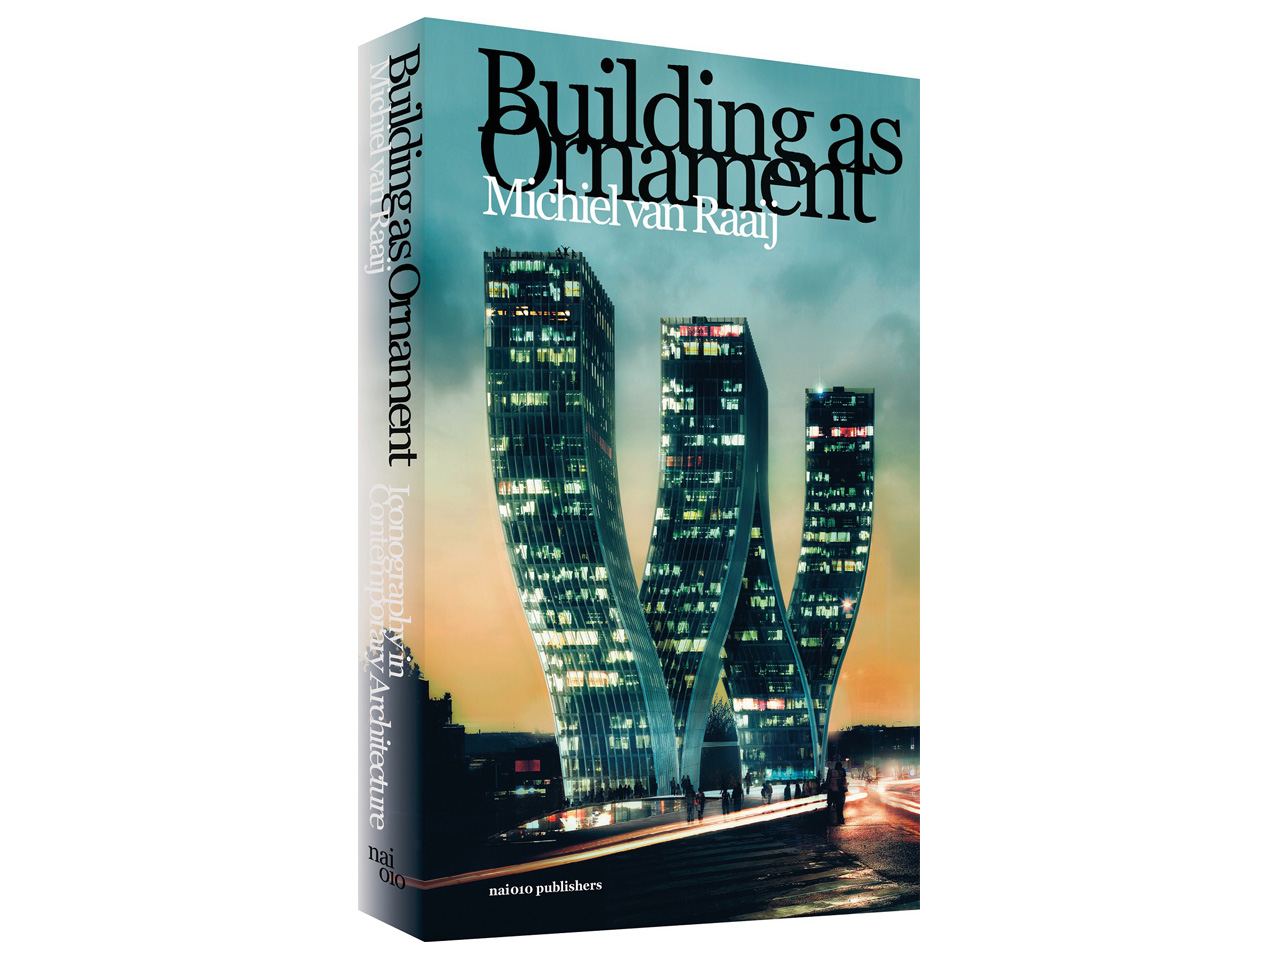 Winy Maas discusses Building Ornament at Book Launch